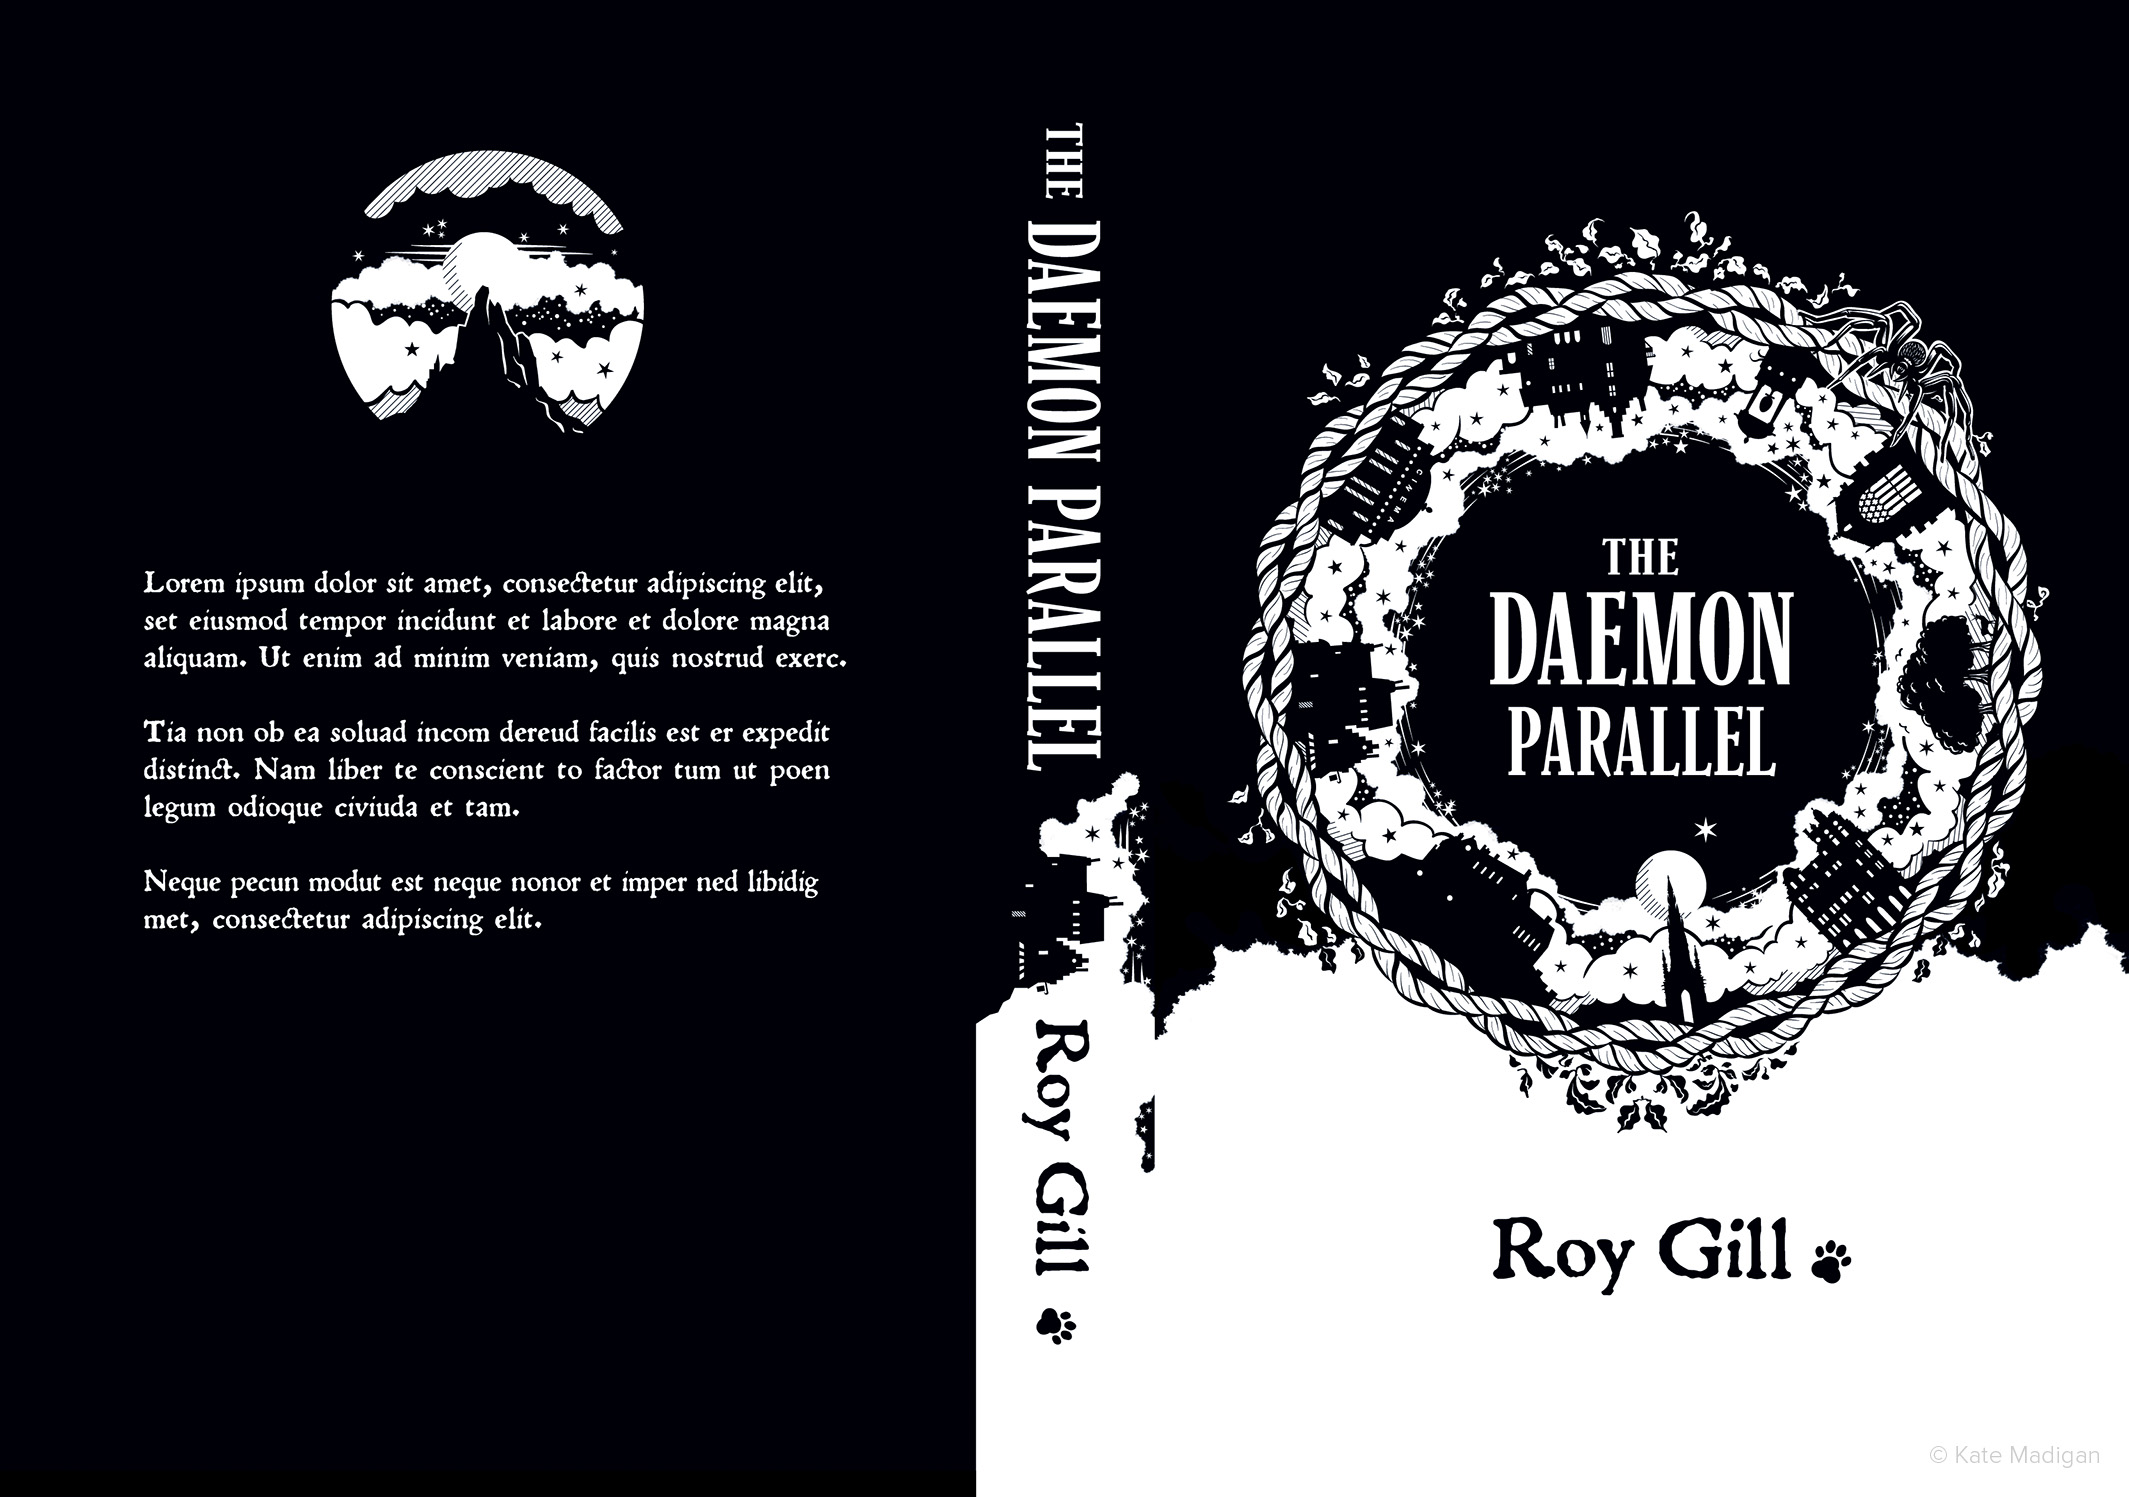 Imagined, alternative cover for Roy Gill's debut novel The Daemon Parallel, featuring motifs and locations from the book (twisted wool, ivy and vegetation, deer in a forest, the full moon, a spider, the Scott Monument in Edinburgh, Jenners Department Store, Edinburgh Castle, the Heave Awa' Hoose  tenement building, an art deco cinema, a shop in the Old Town, St Bernard's Well, Holyrood Chapel, a paw print and a magical cloudscape  ).    Illustration copyright Kate Madigan.